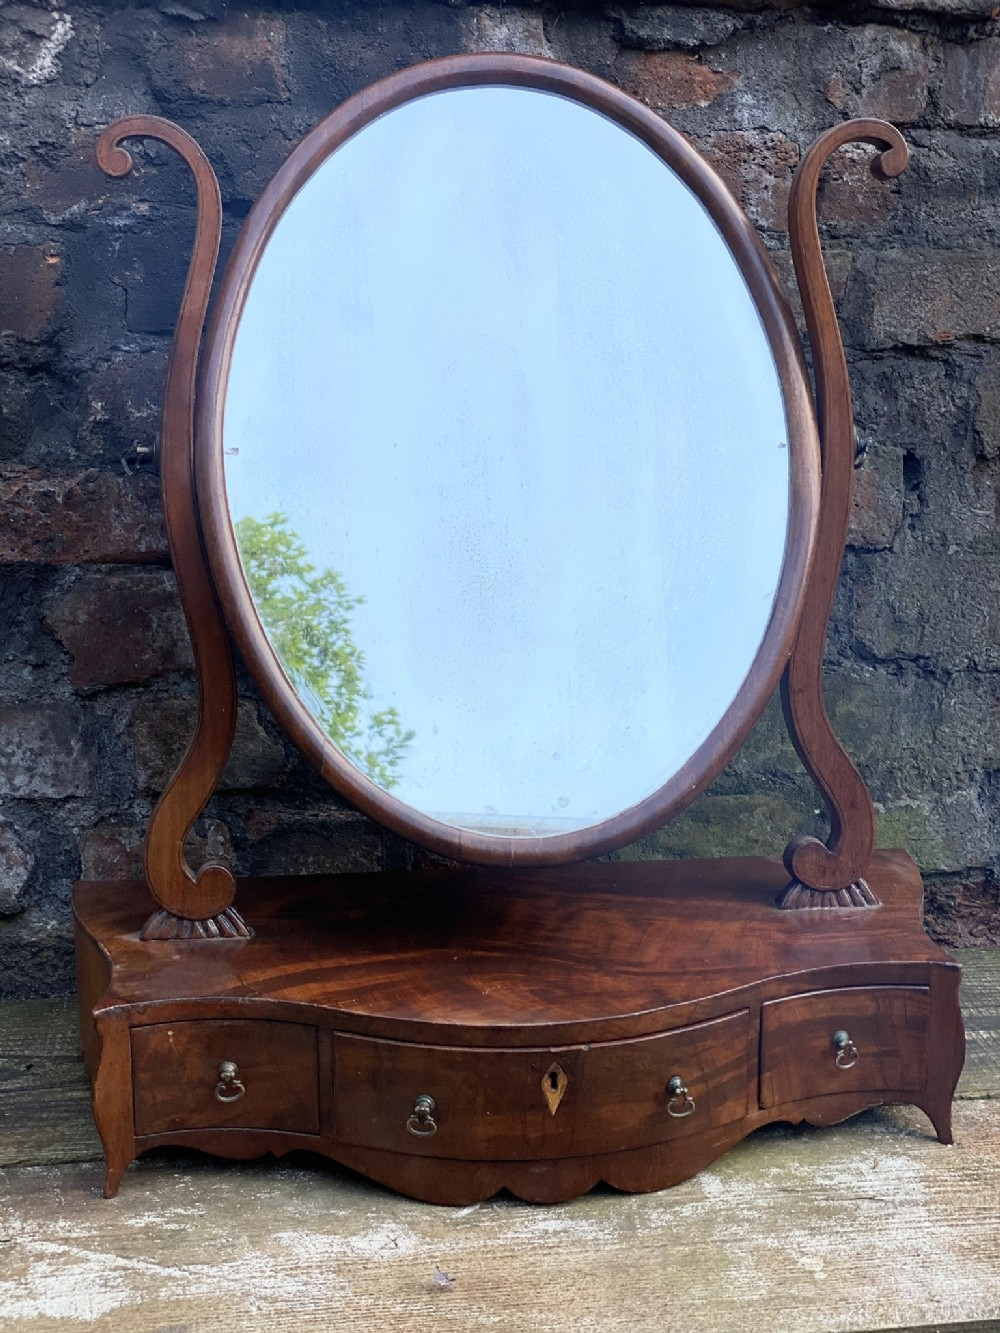 early c19th serpentine fronted toilet mirror with oval mirror